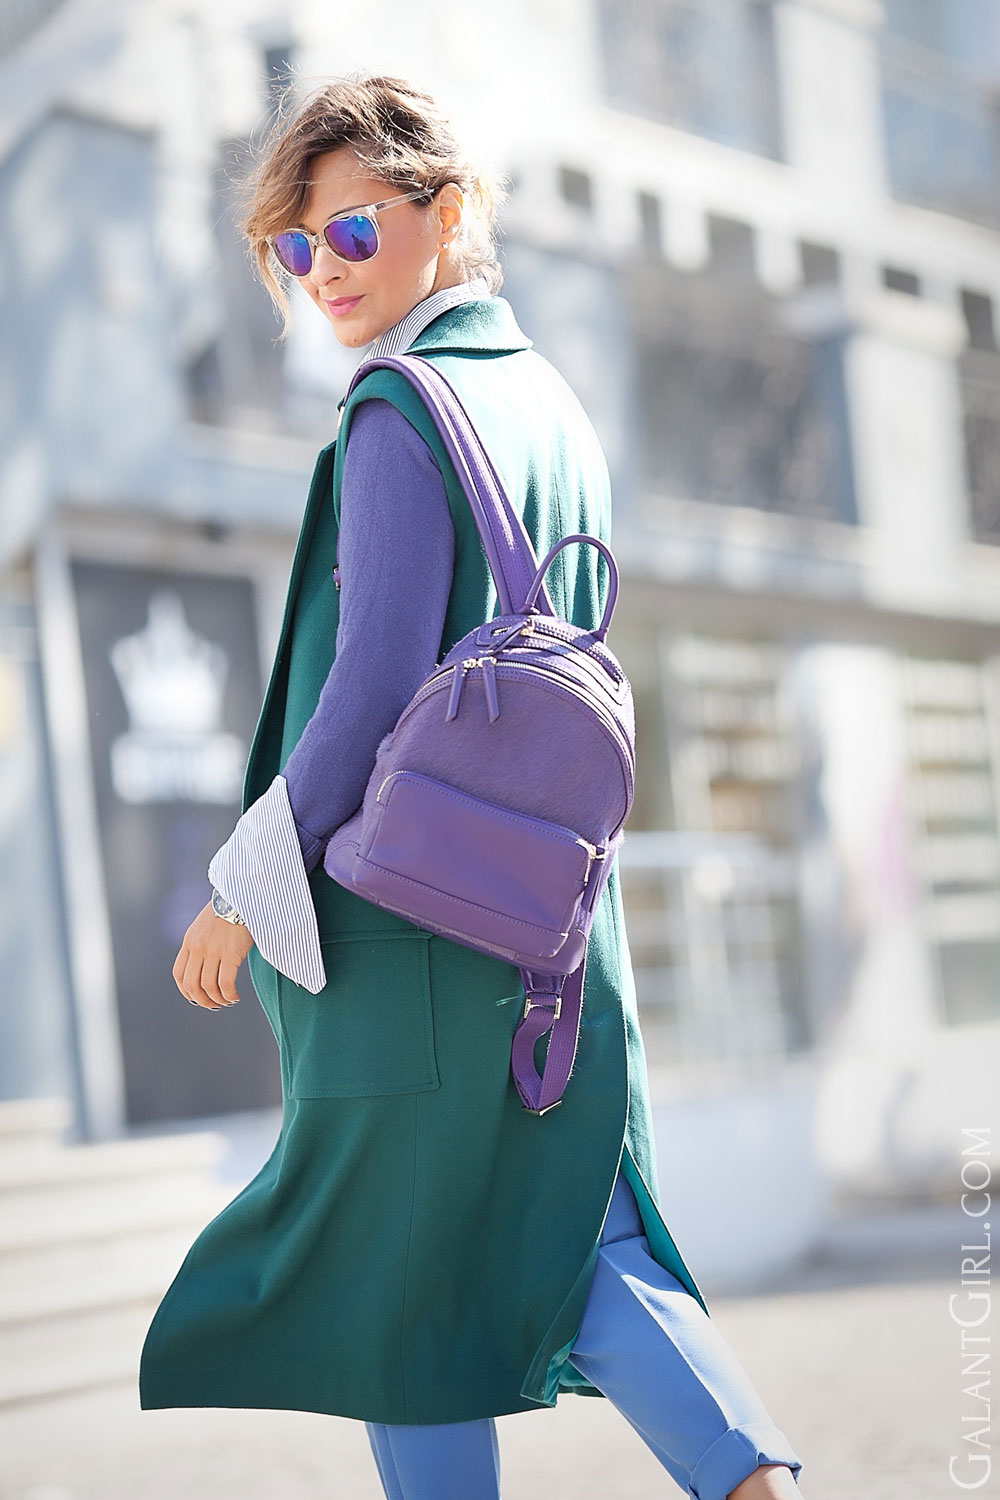 pernelle-alessandro+backpack-fashion-blogger-ellena+galant